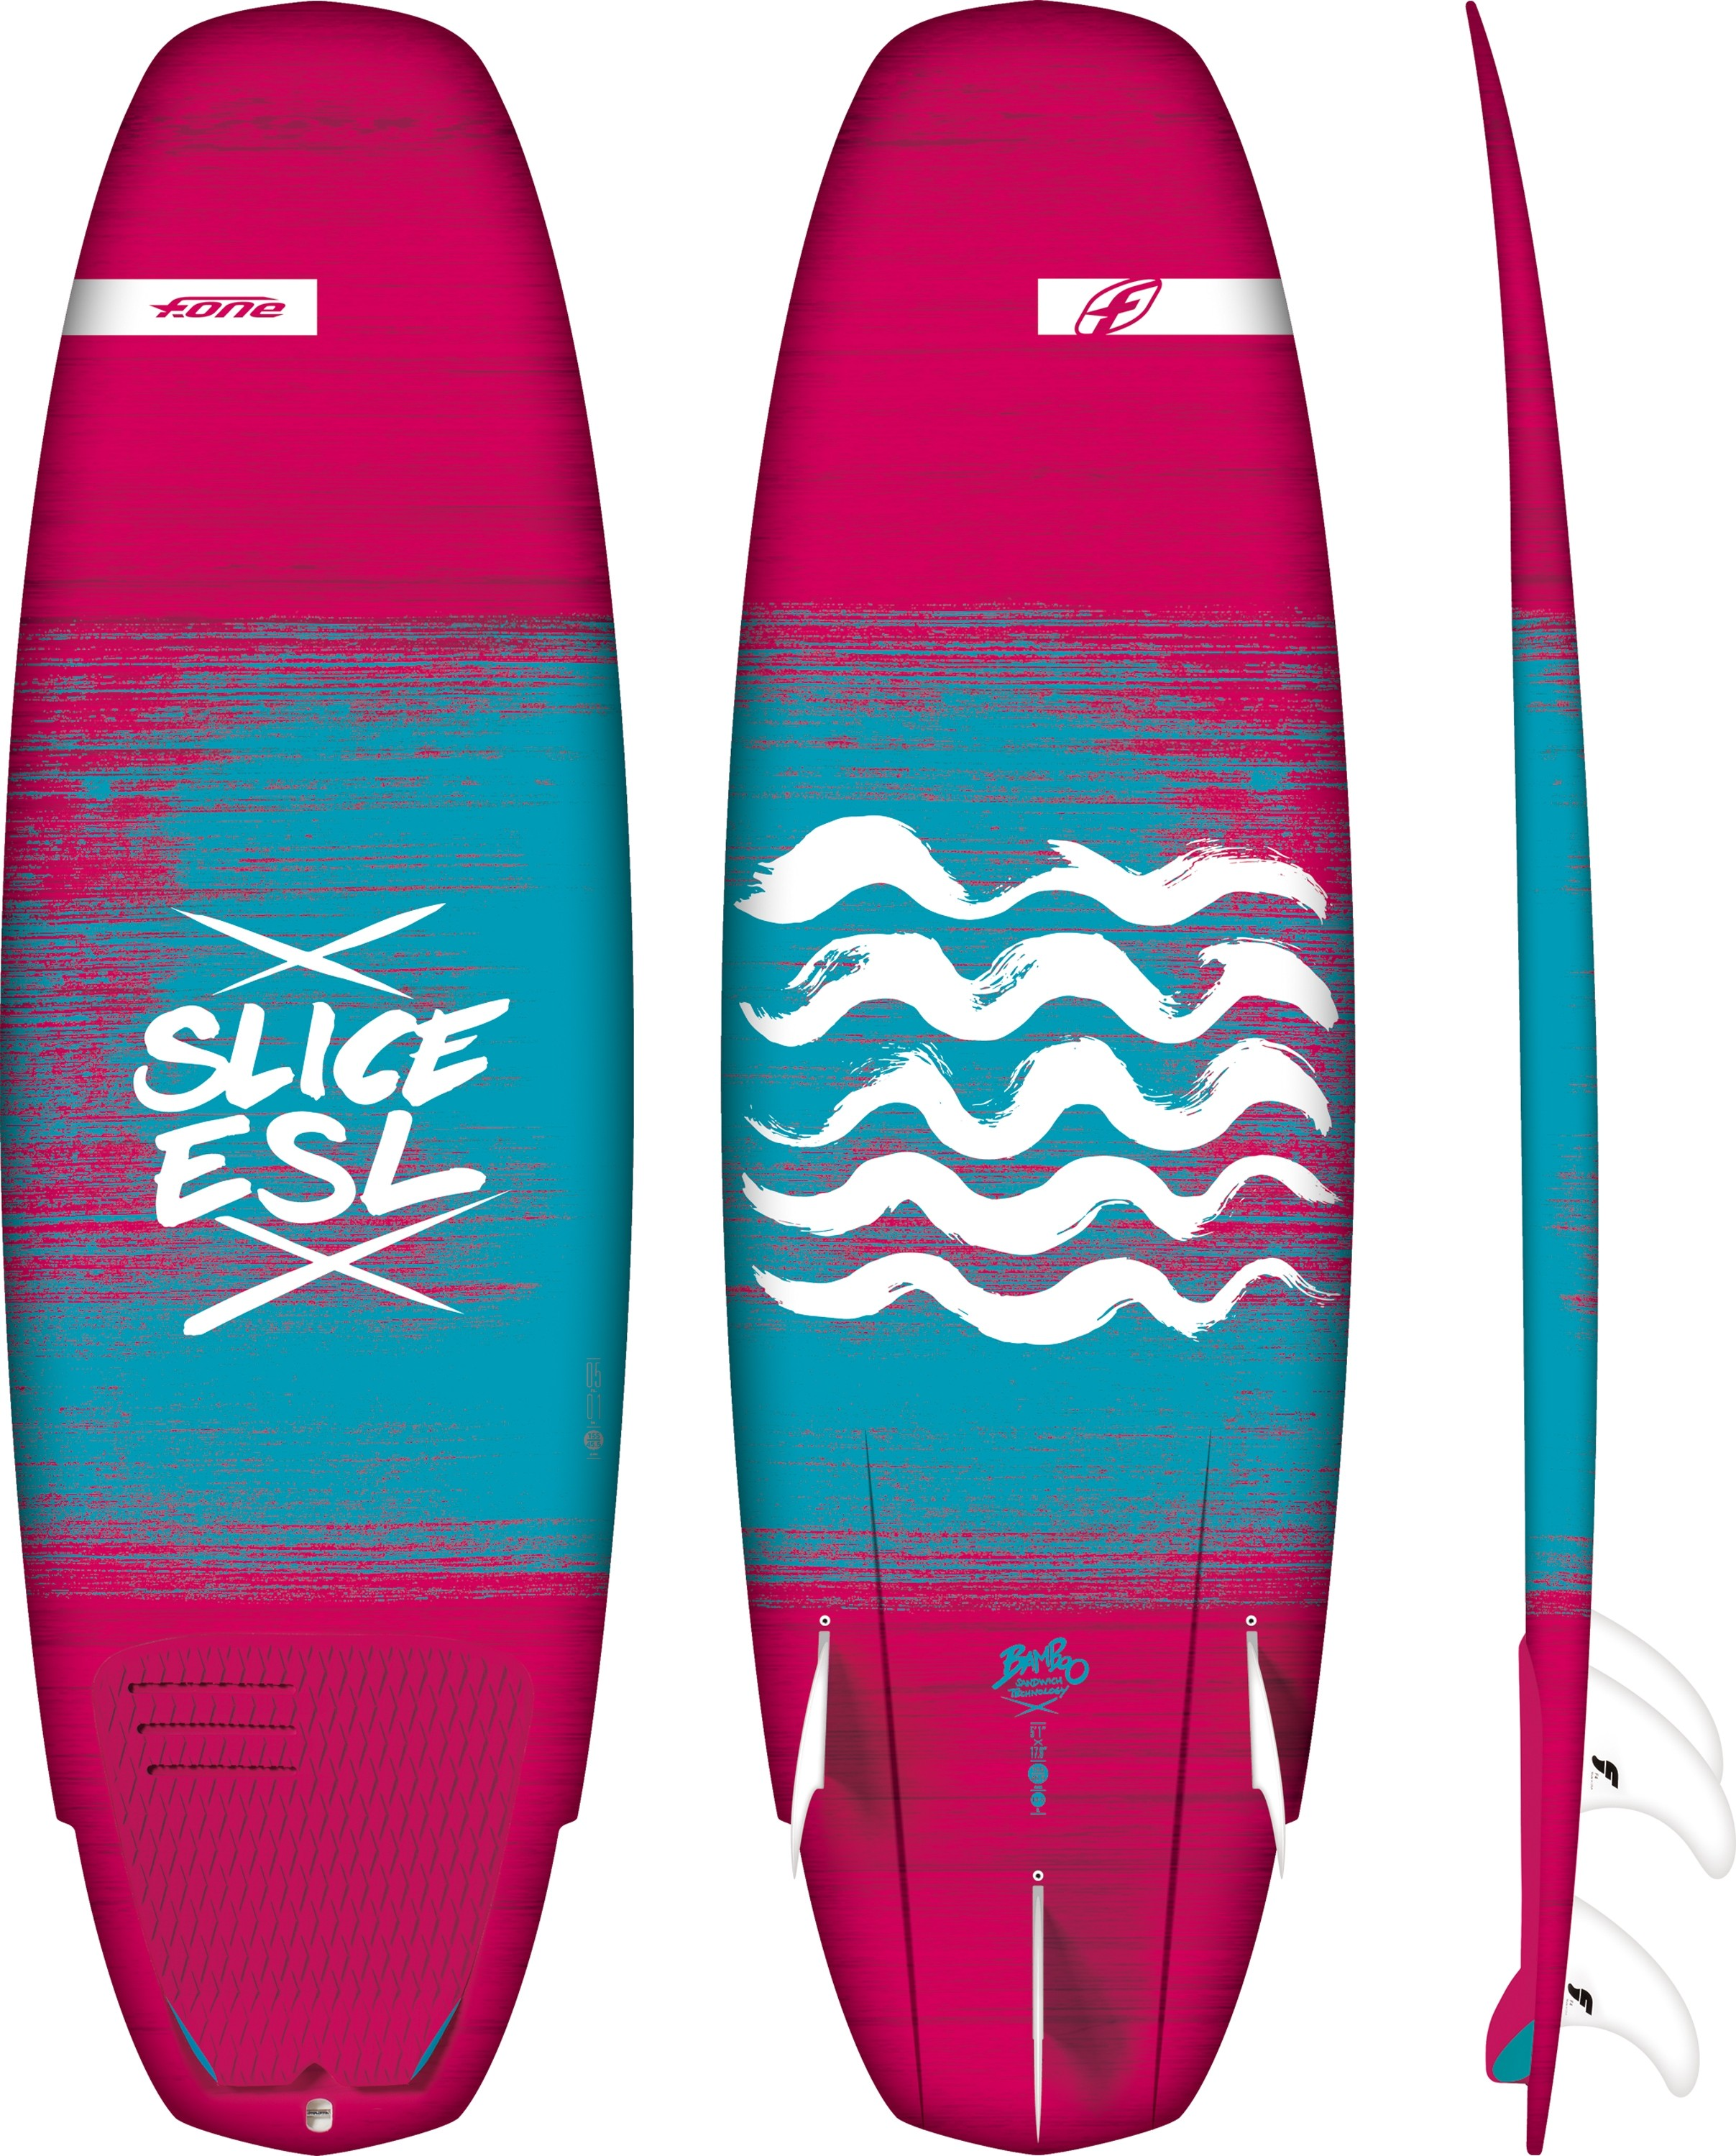 F-One slice essential surfboard